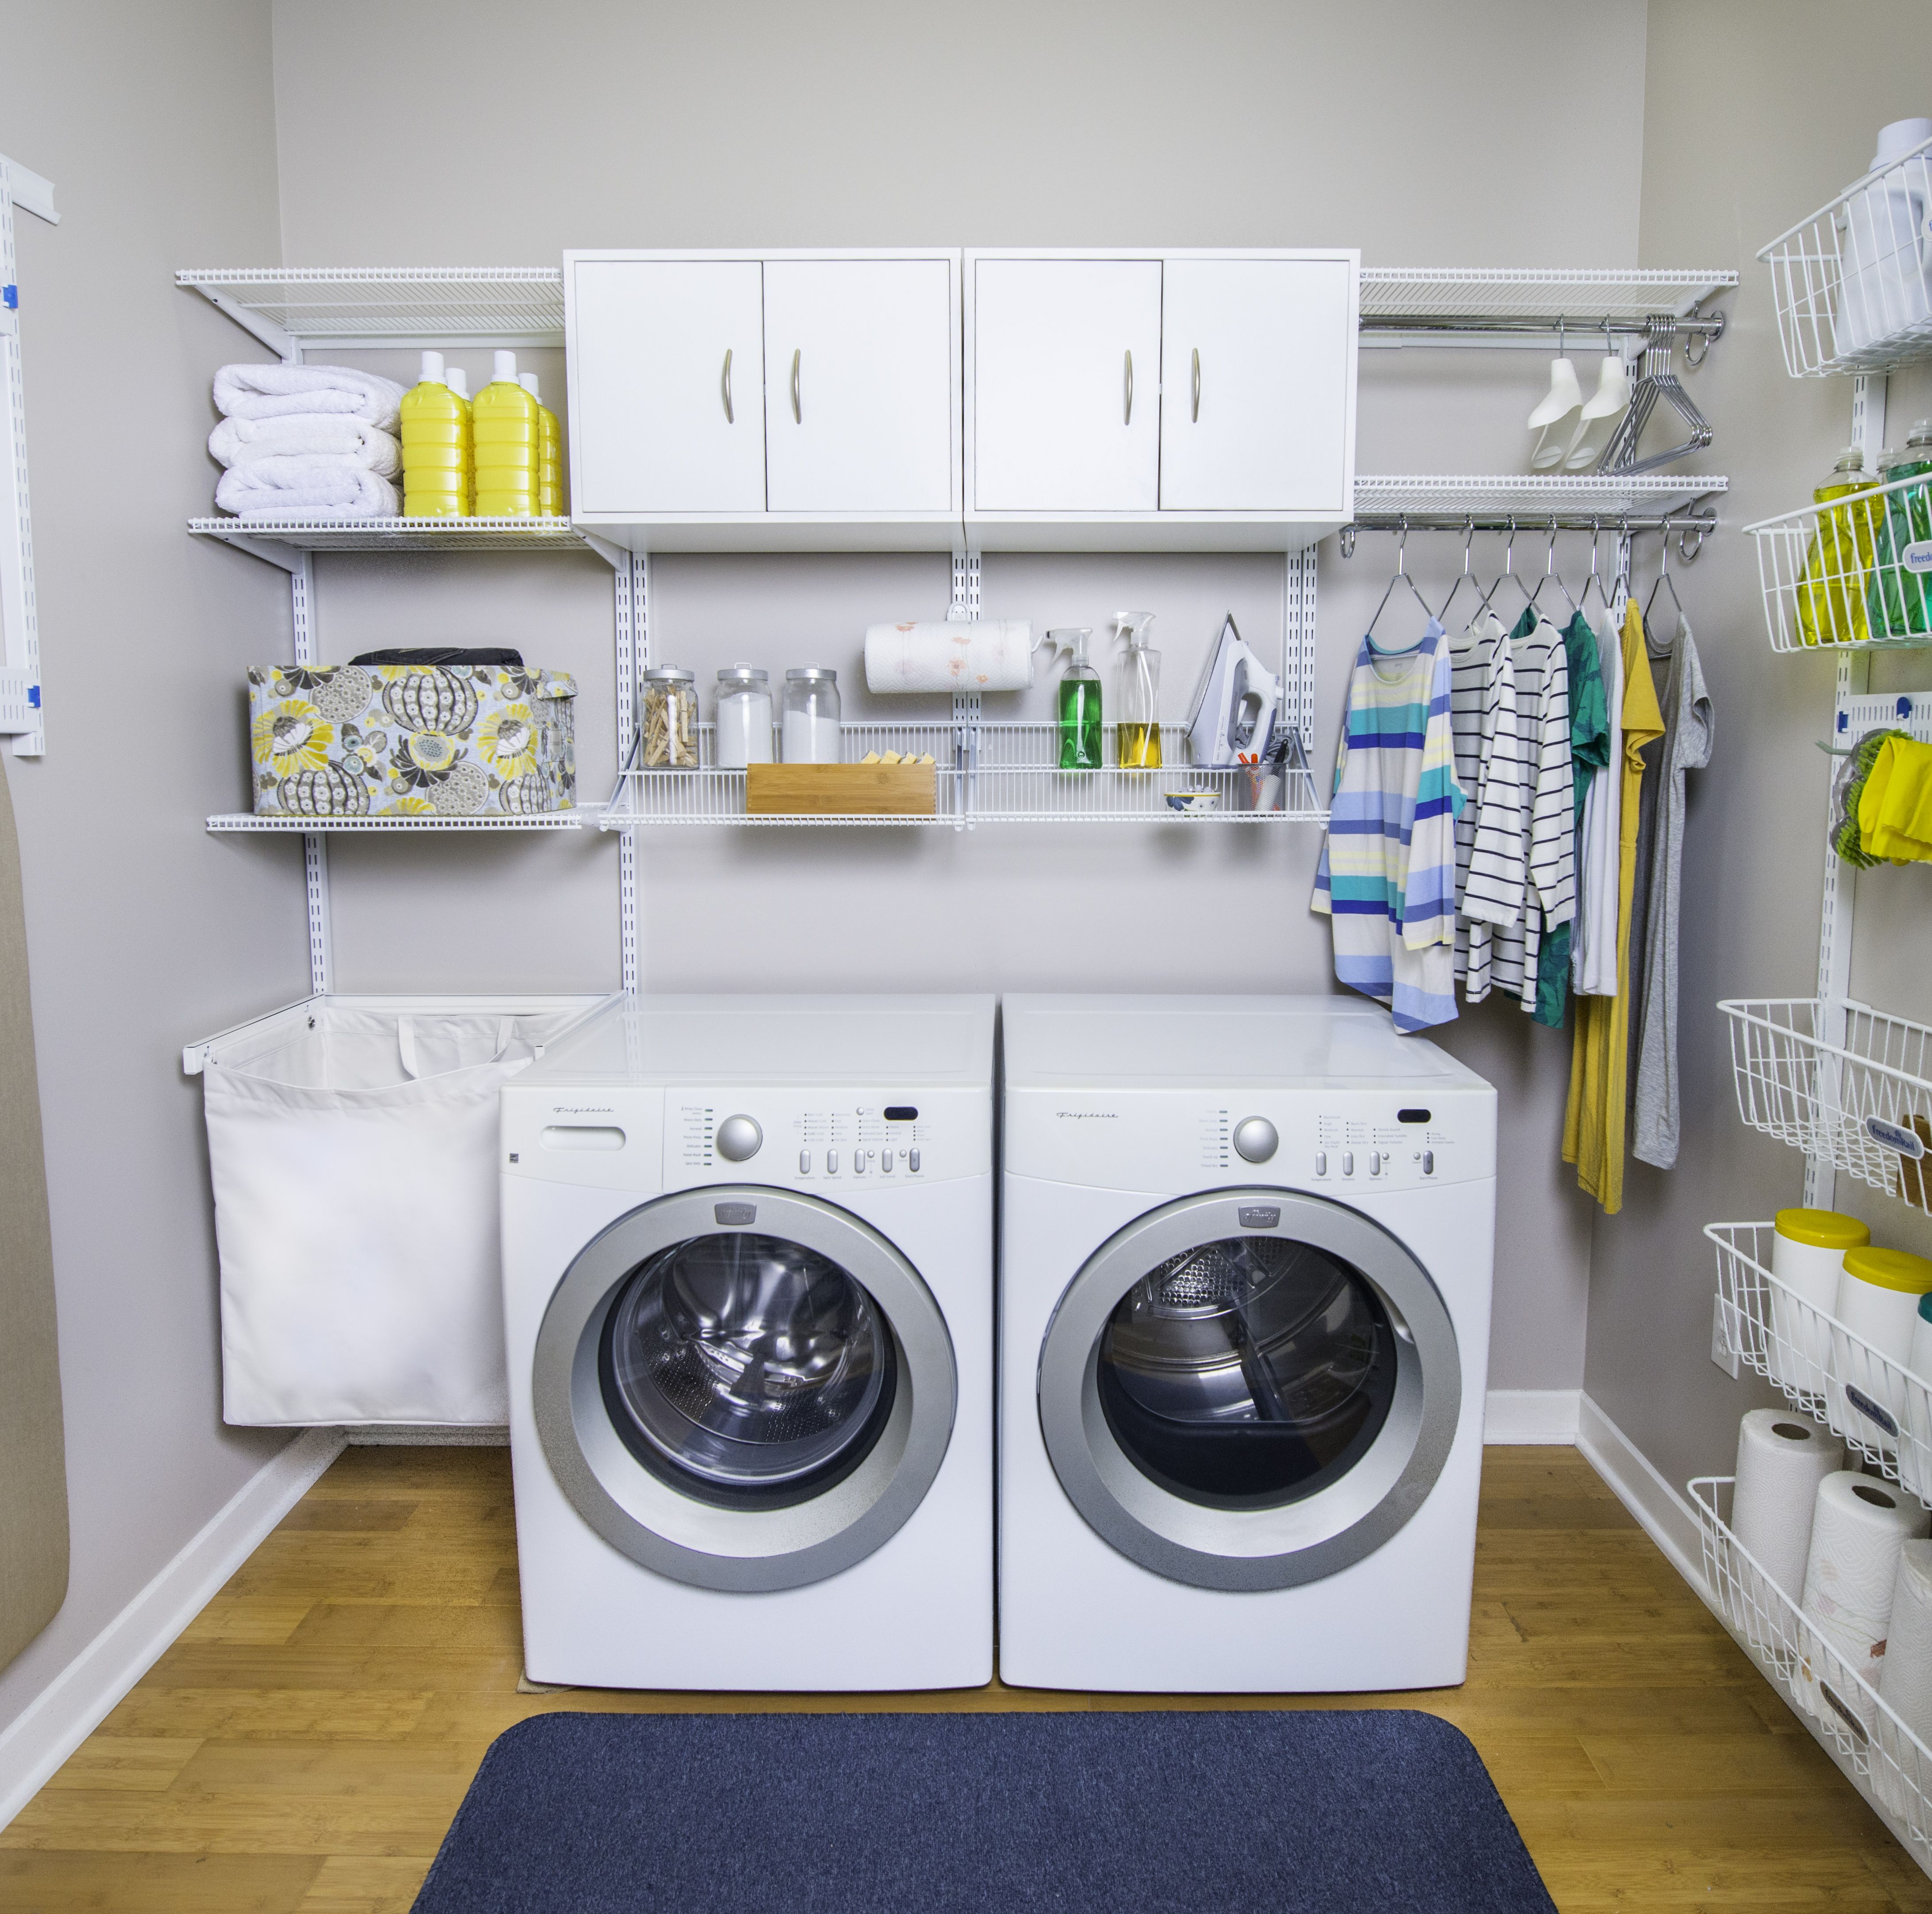 Organize Your Laundry Routine With Seven Simple Tips Blog Organized Living Storage Ideas Laundry Room Organization Laundry Room Design Small Laundry Rooms